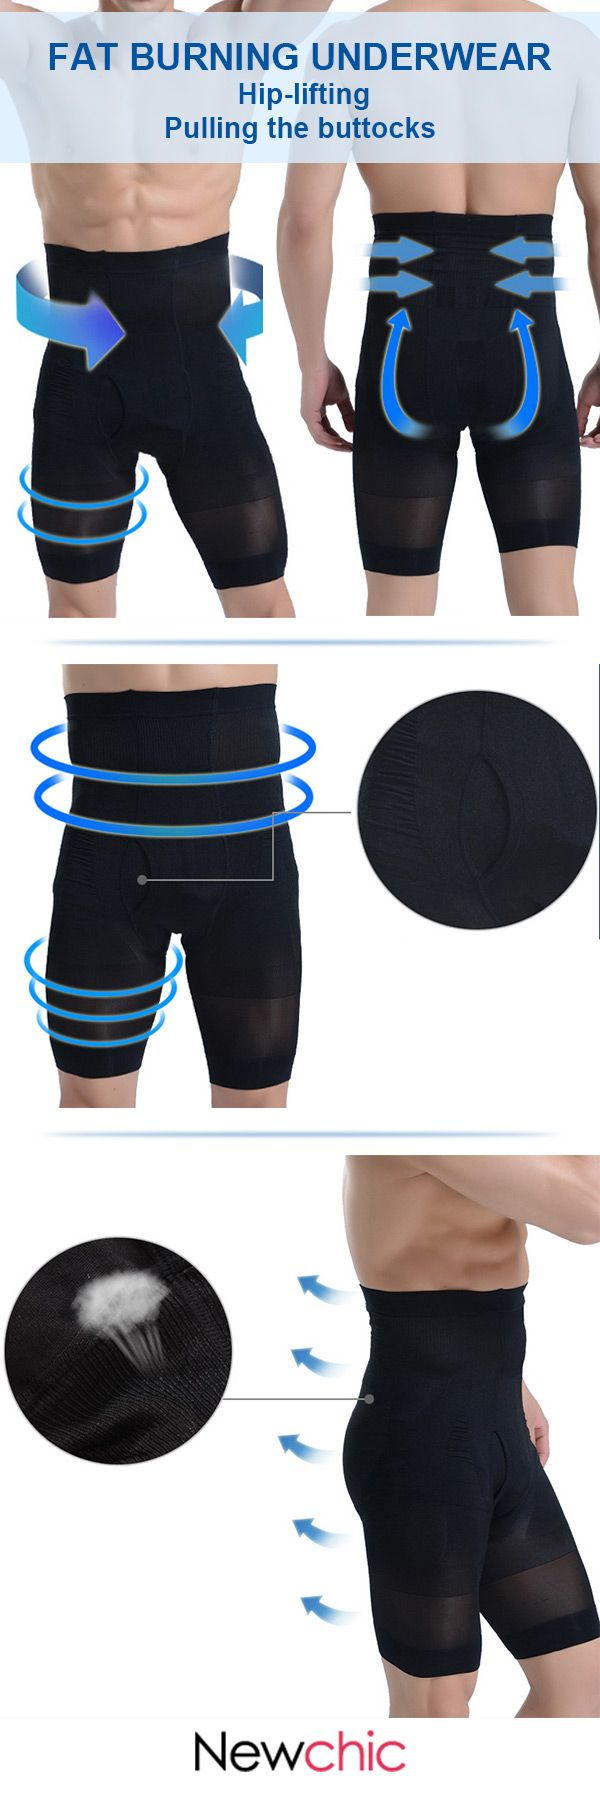 High Elastic Fat Burning Underwear Tight Tummy Tuck Hip Lifting Boxers for Men